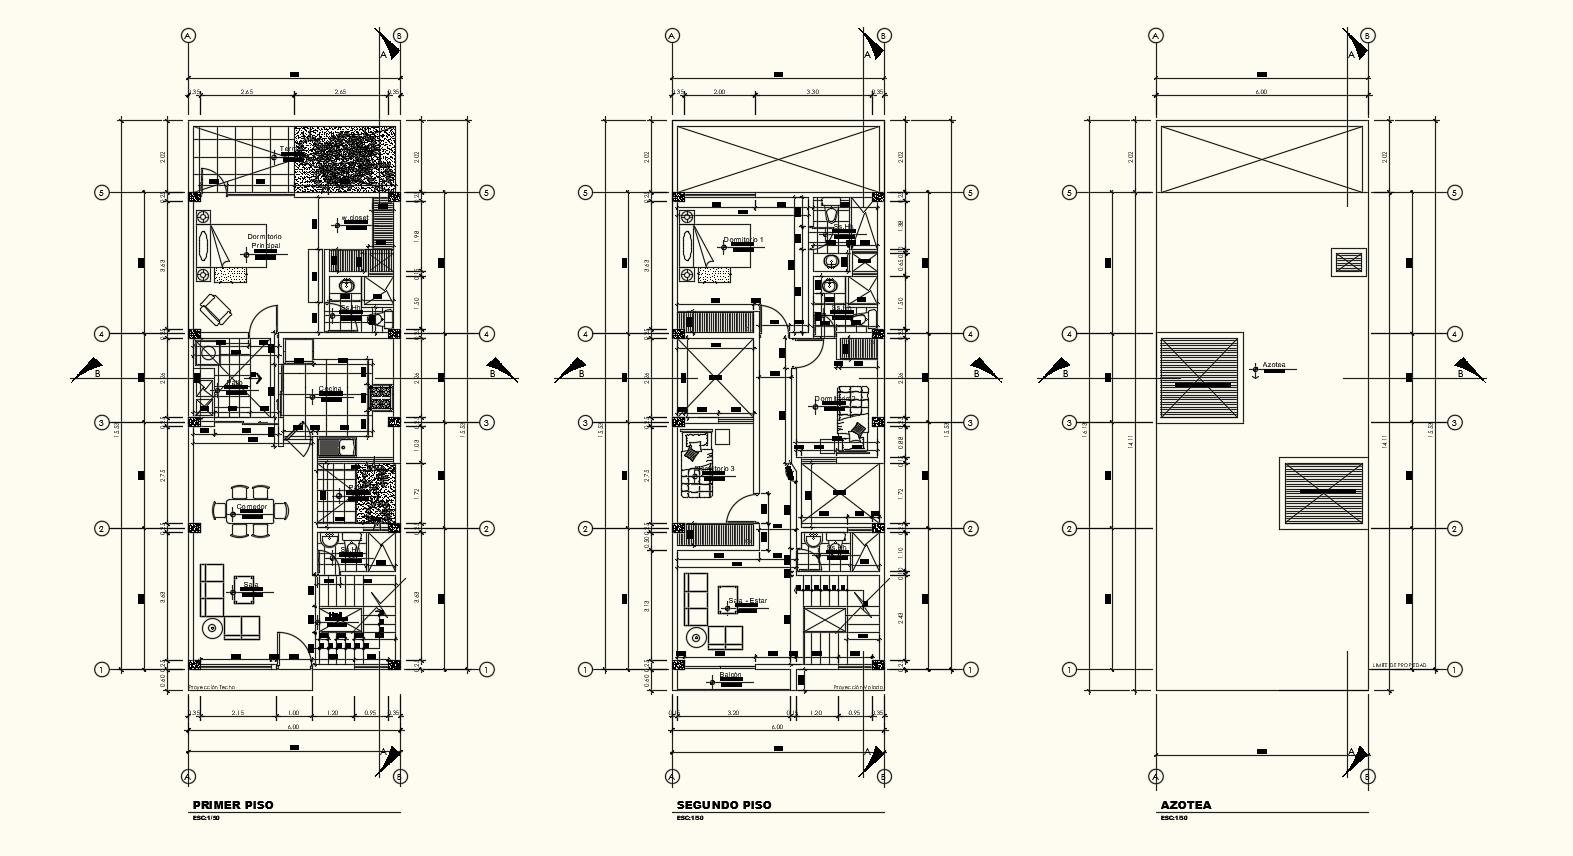 Single family home floor plan with architecture view dwg file